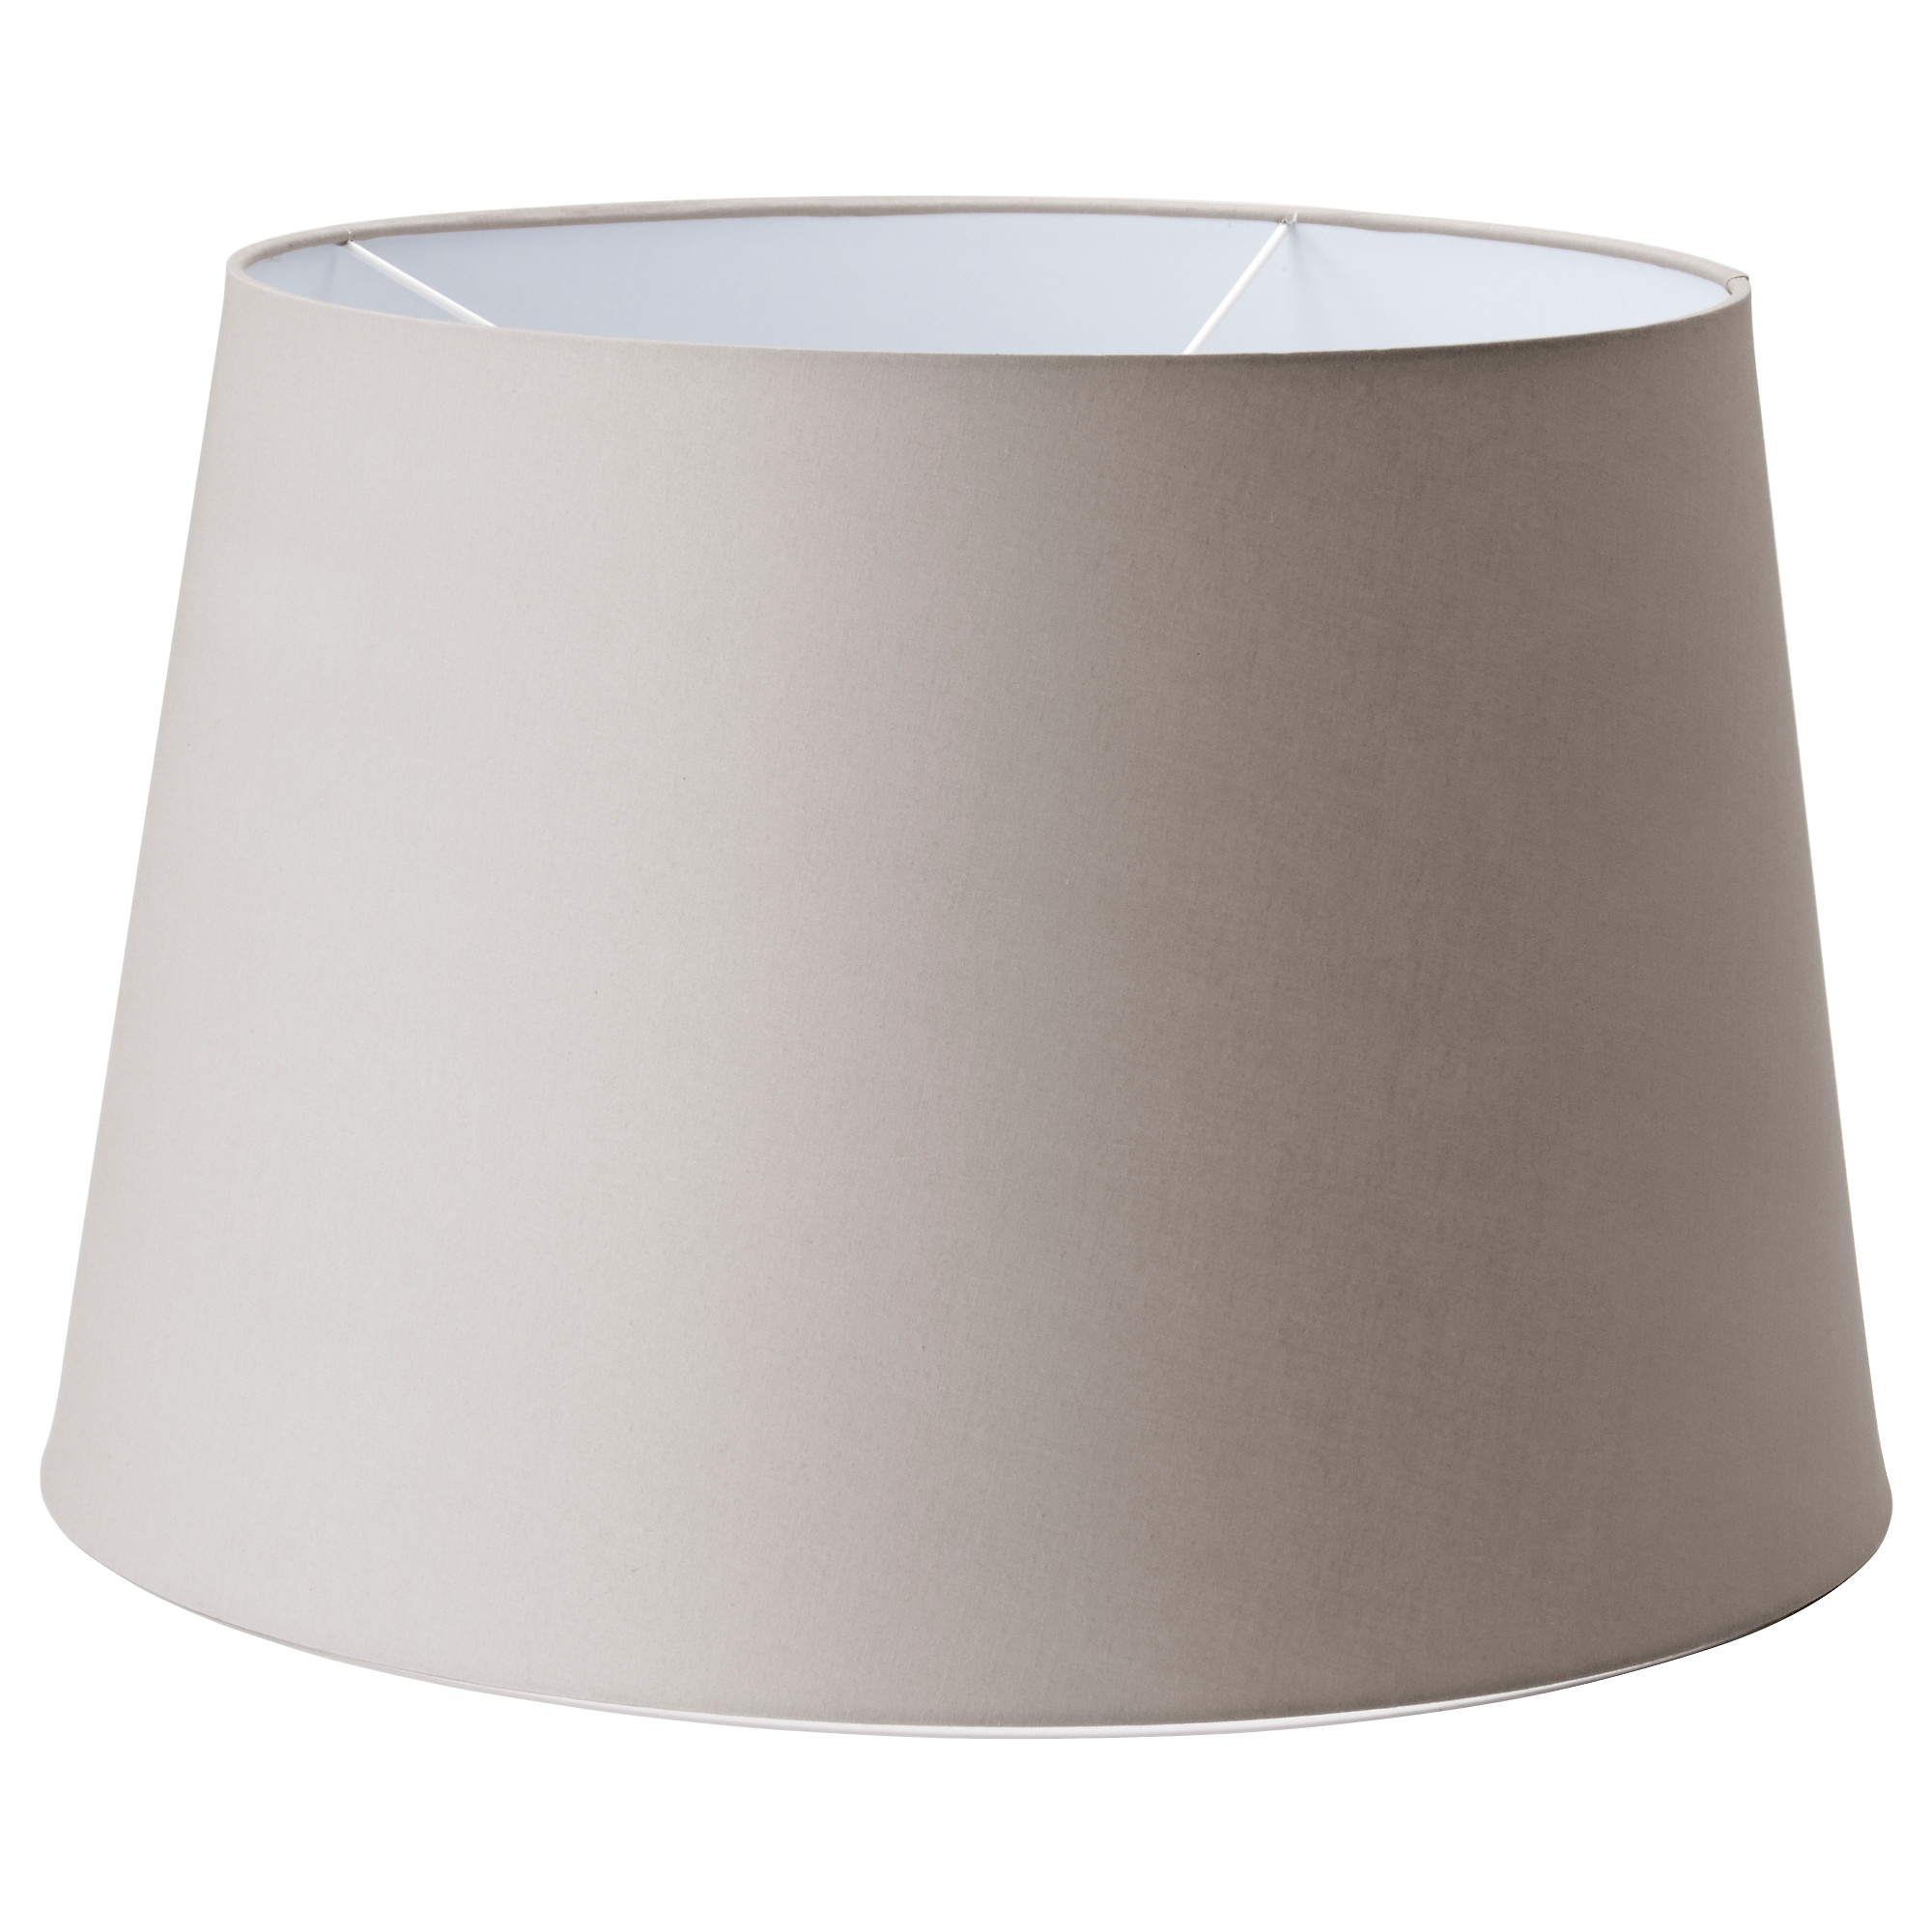 JÄRA Lamp shade - gray, 45 cm - IKEA:,Lighting